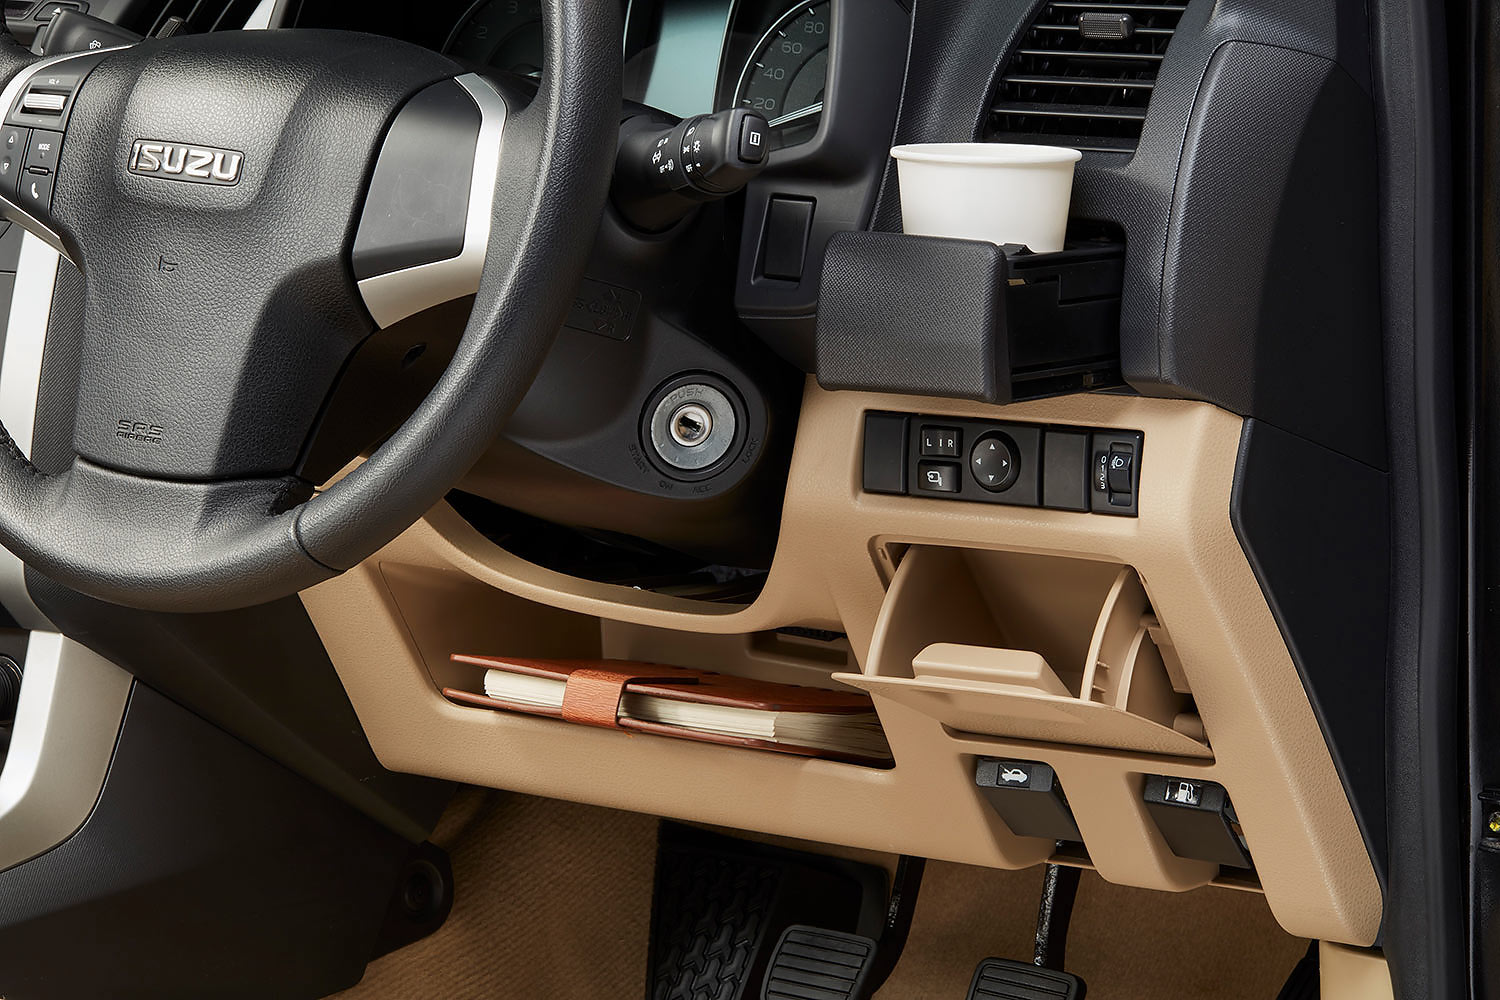 Isuzu-storage-compartments.jpg